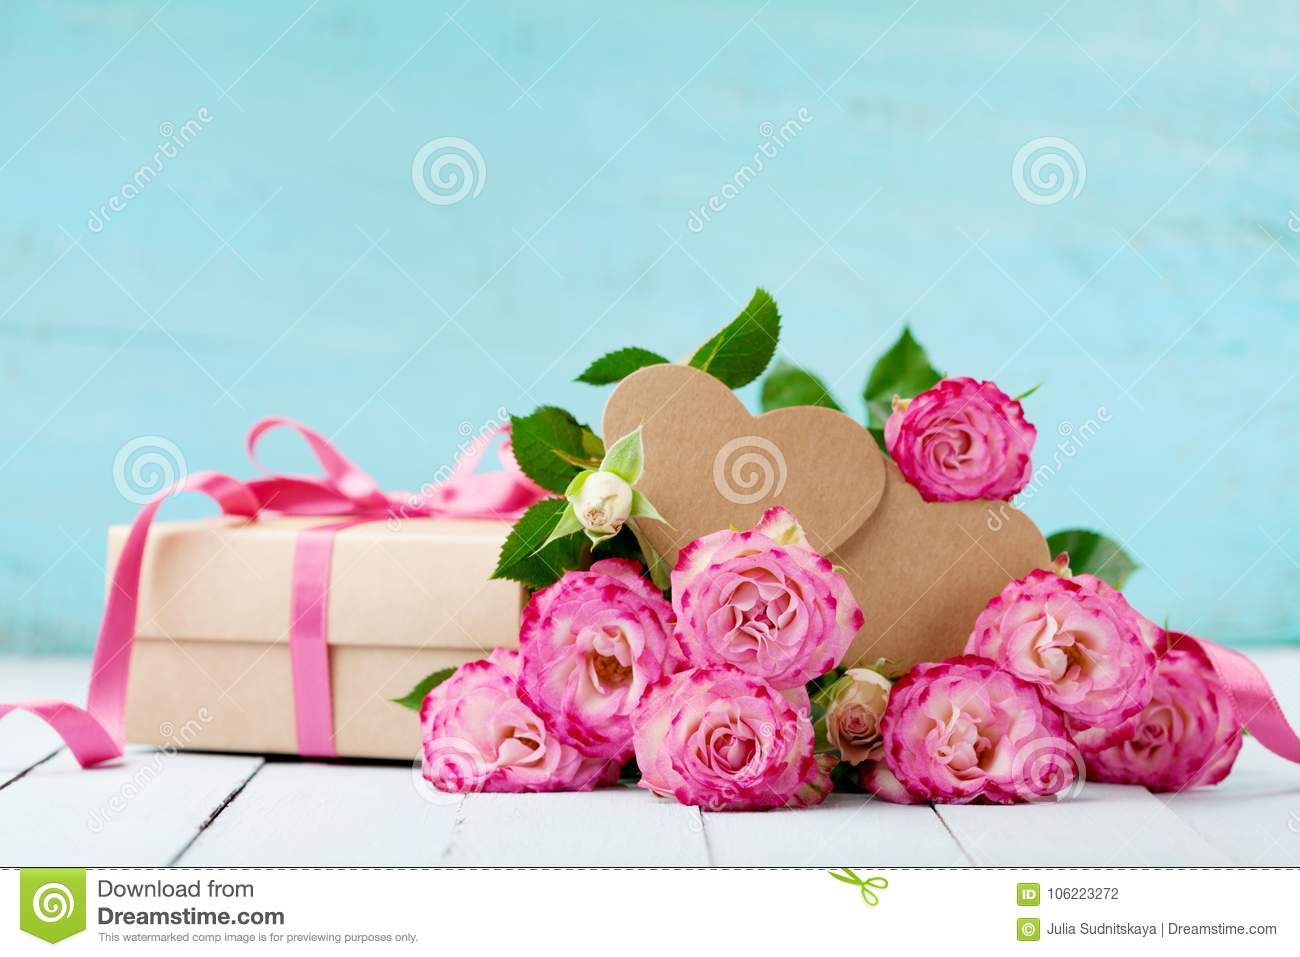 Greeting Card For Birthday Woman Or Mothers Day Pink Rose Flowers And Gift Box